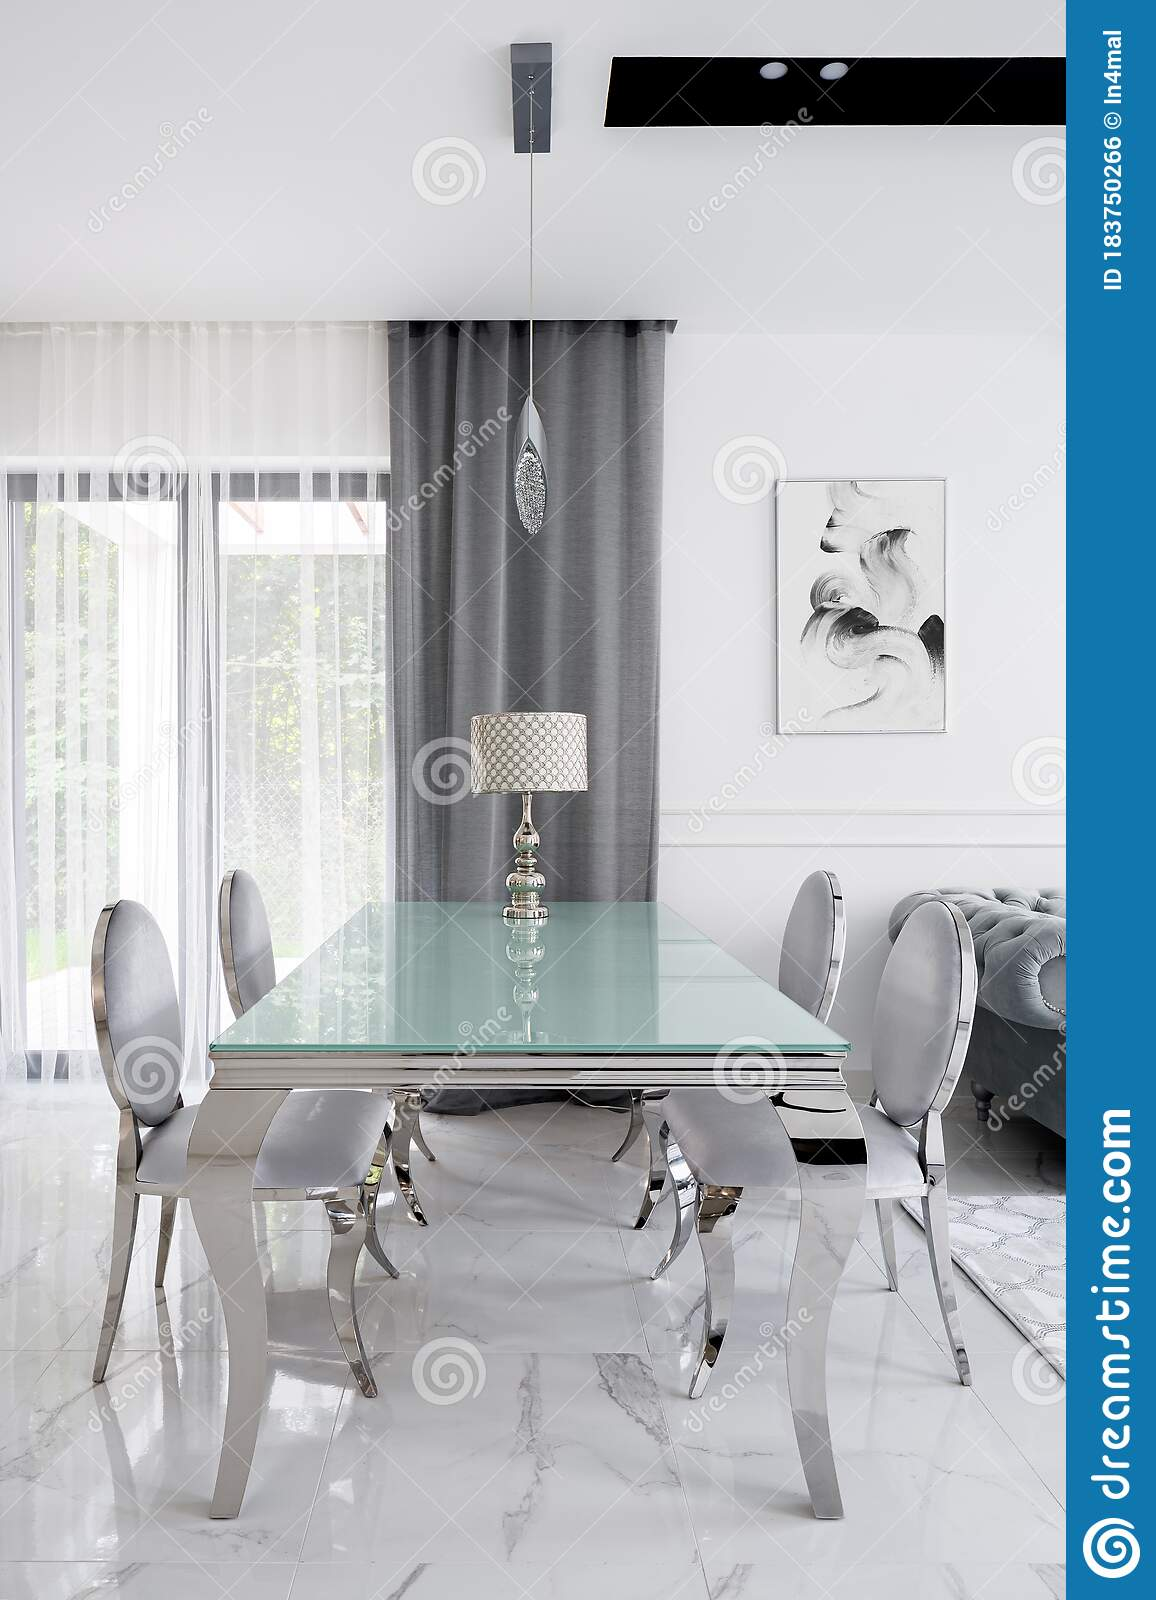 Luxury Style Dining Table With Chairs Stock Photo Image Of Glass Curtains 183750266